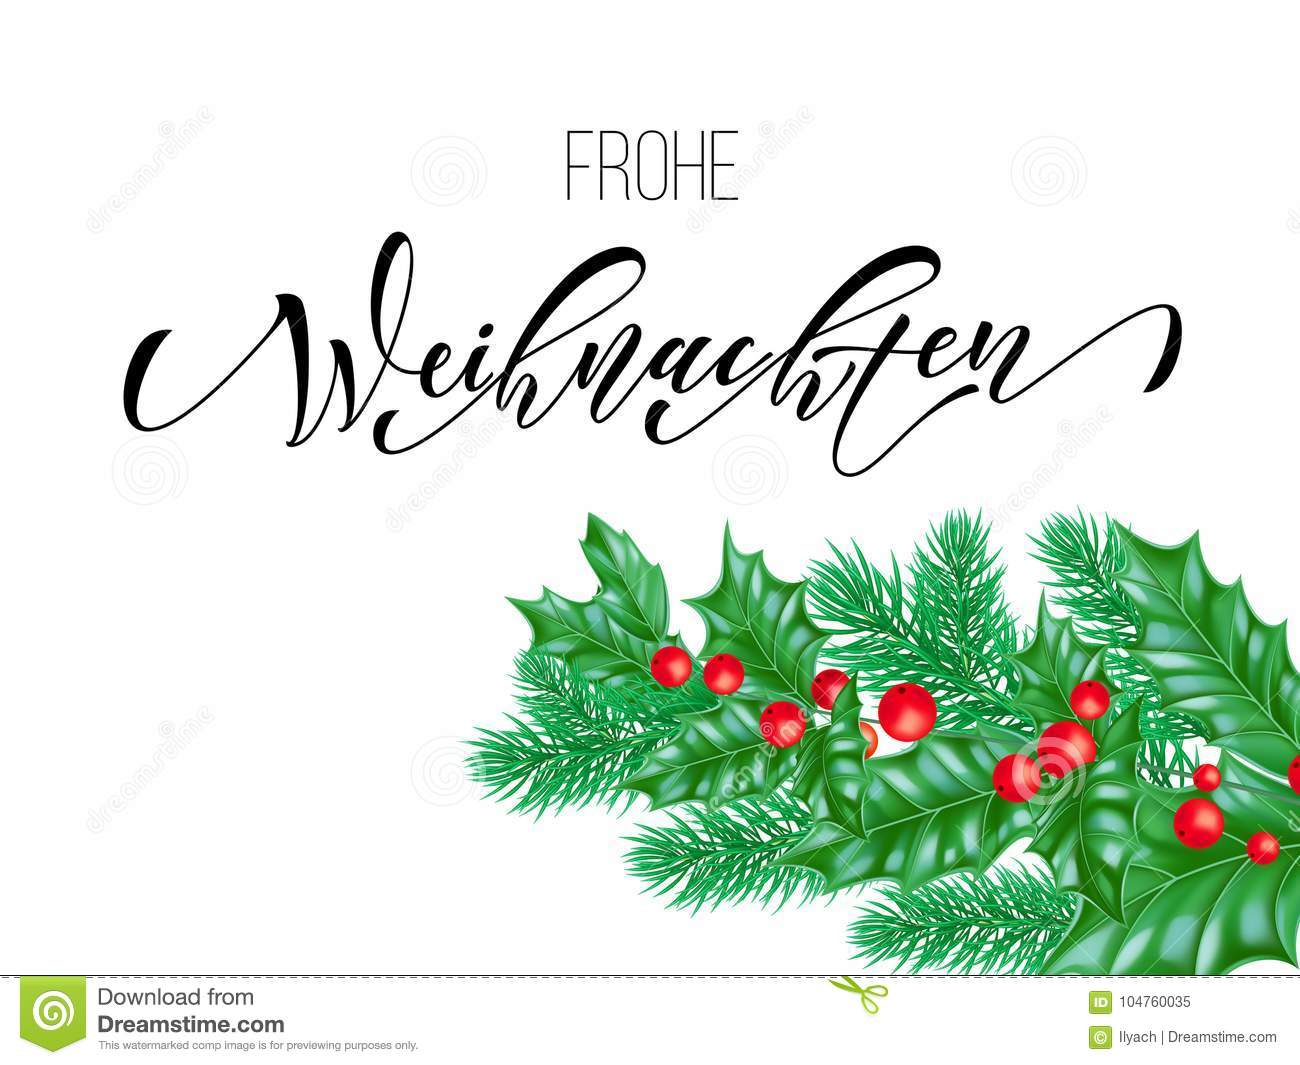 Design Weihnachten Frohe Weihnachten German Merry Christmas Calligraphy Font On White